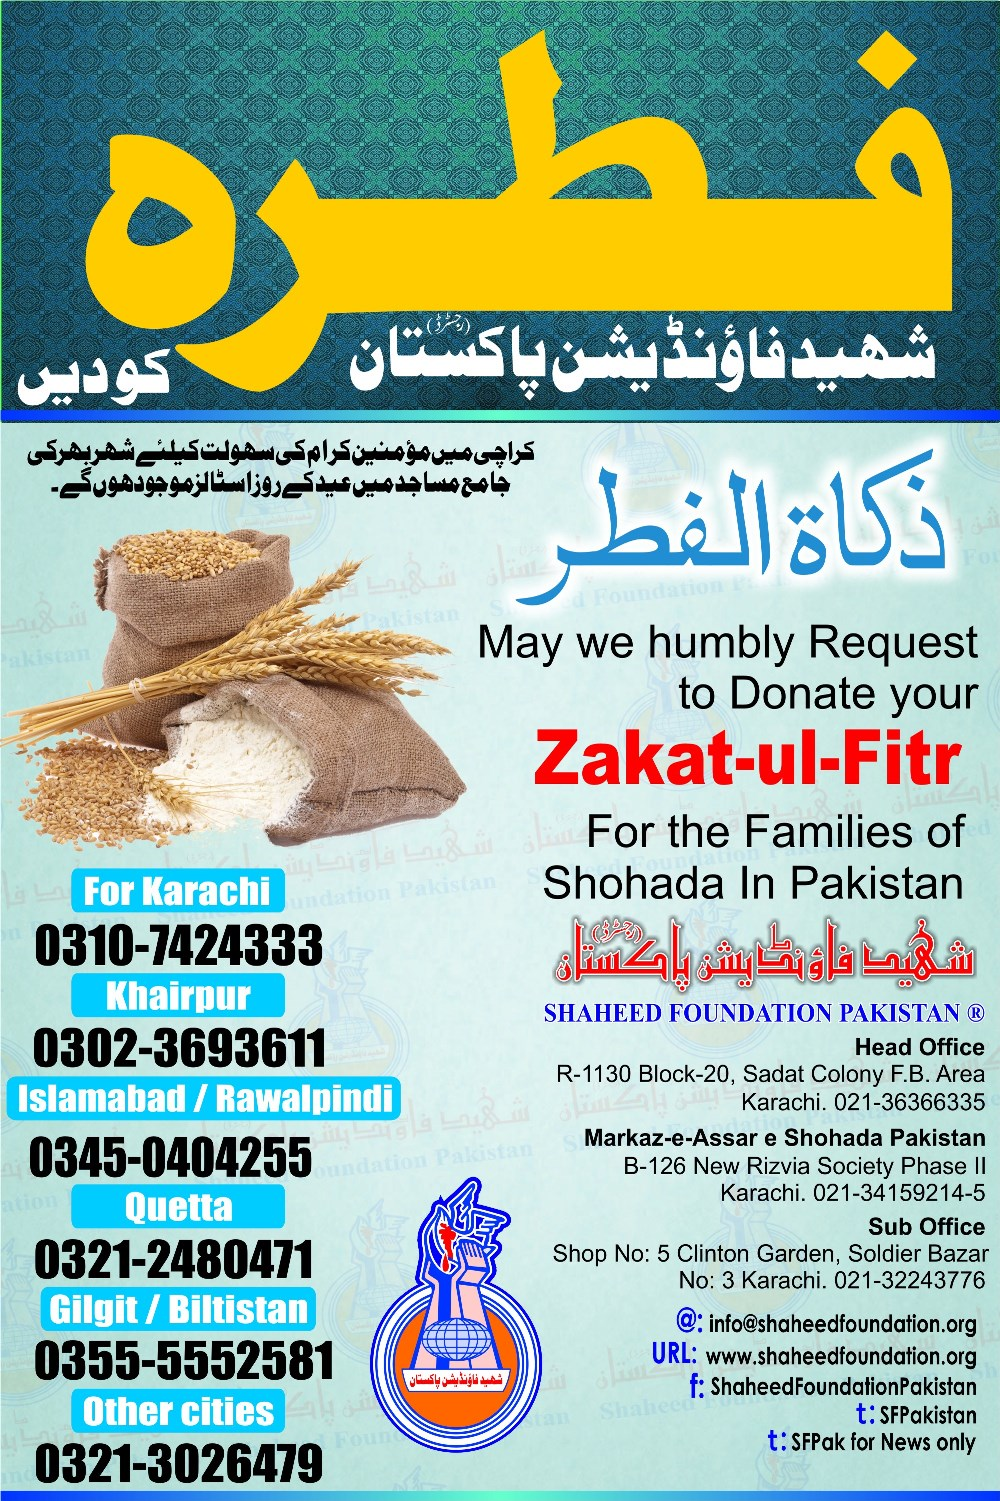 Zakat-e-Fitra Collection on the Eve of Eid-ul-Fitr 2019